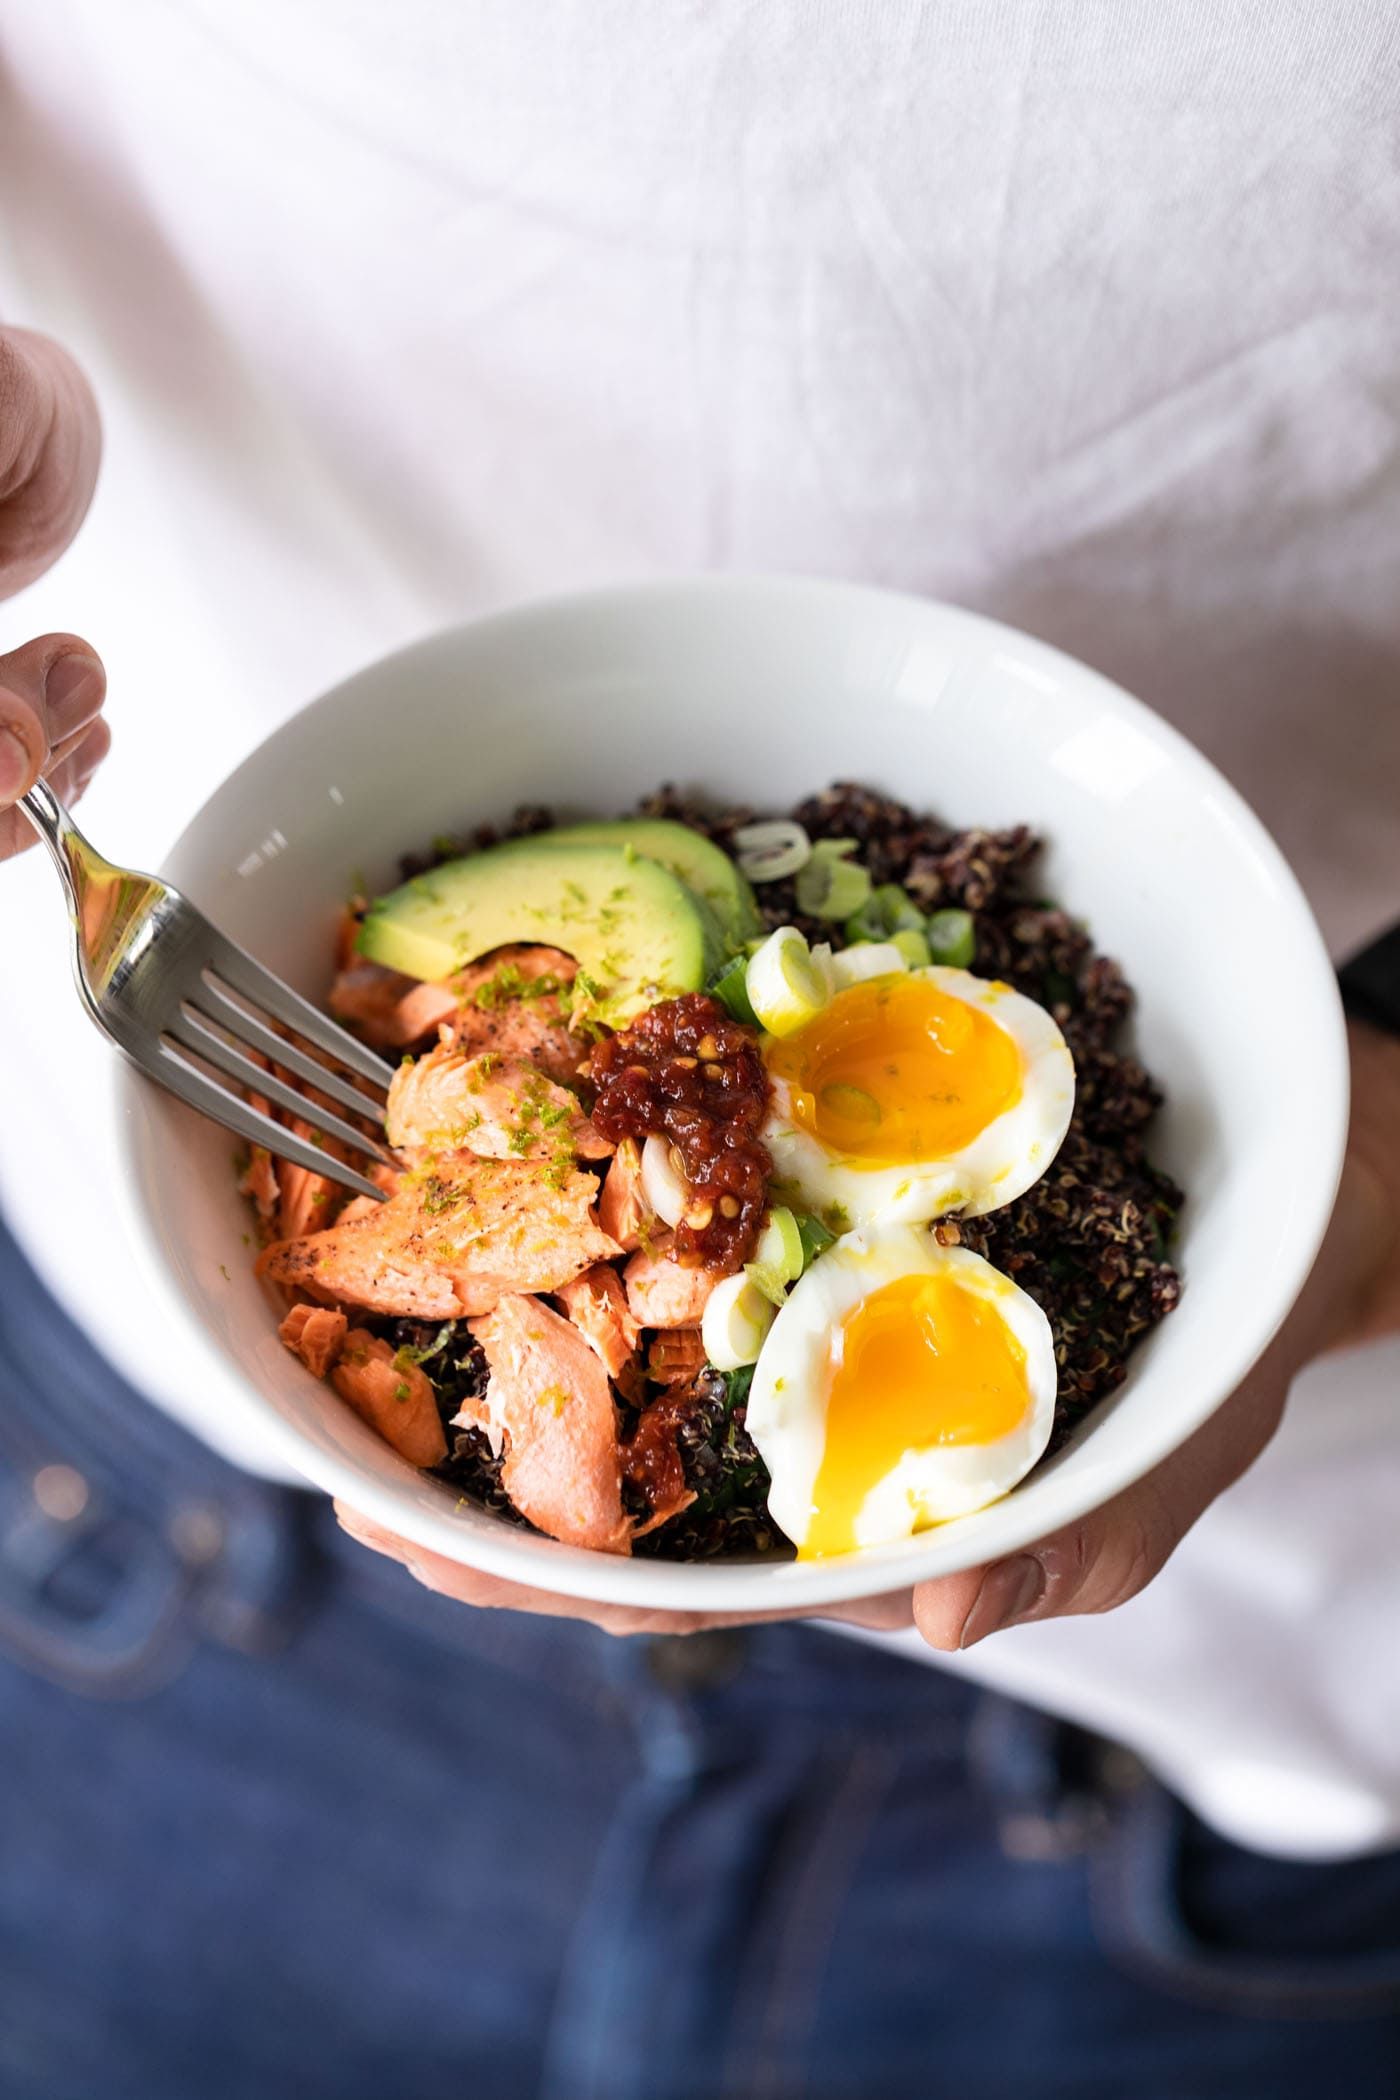 Hands holding white bowl filled with quinoa, avocado, salmon, and a slice egg with a fork taking a piece with white shirt in background